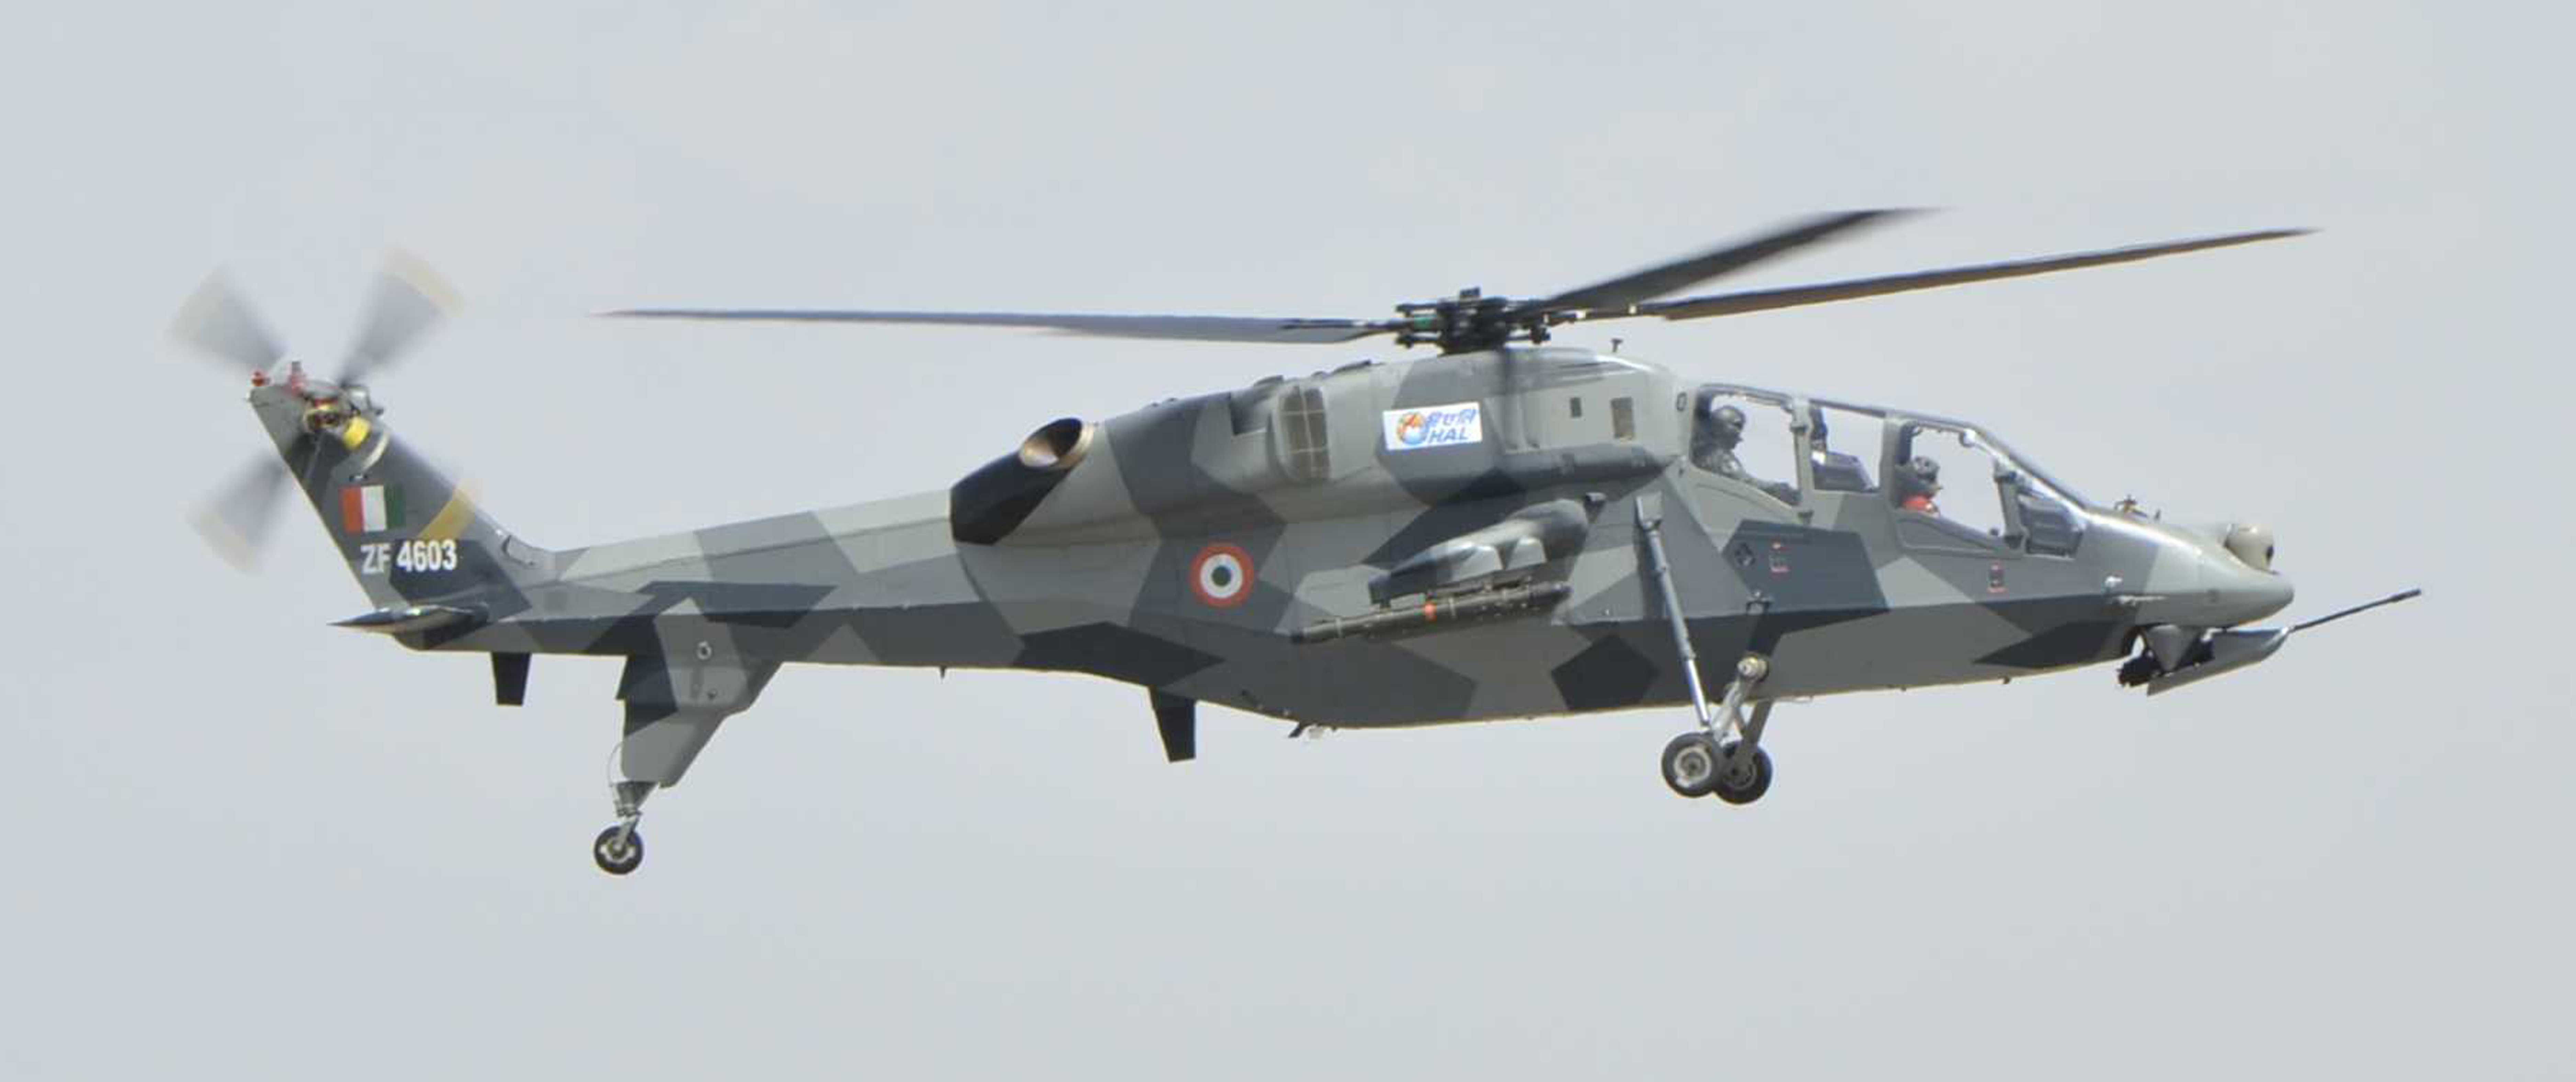 Elicottero Stealth : Light combat helicopter lch elicotteri aerei